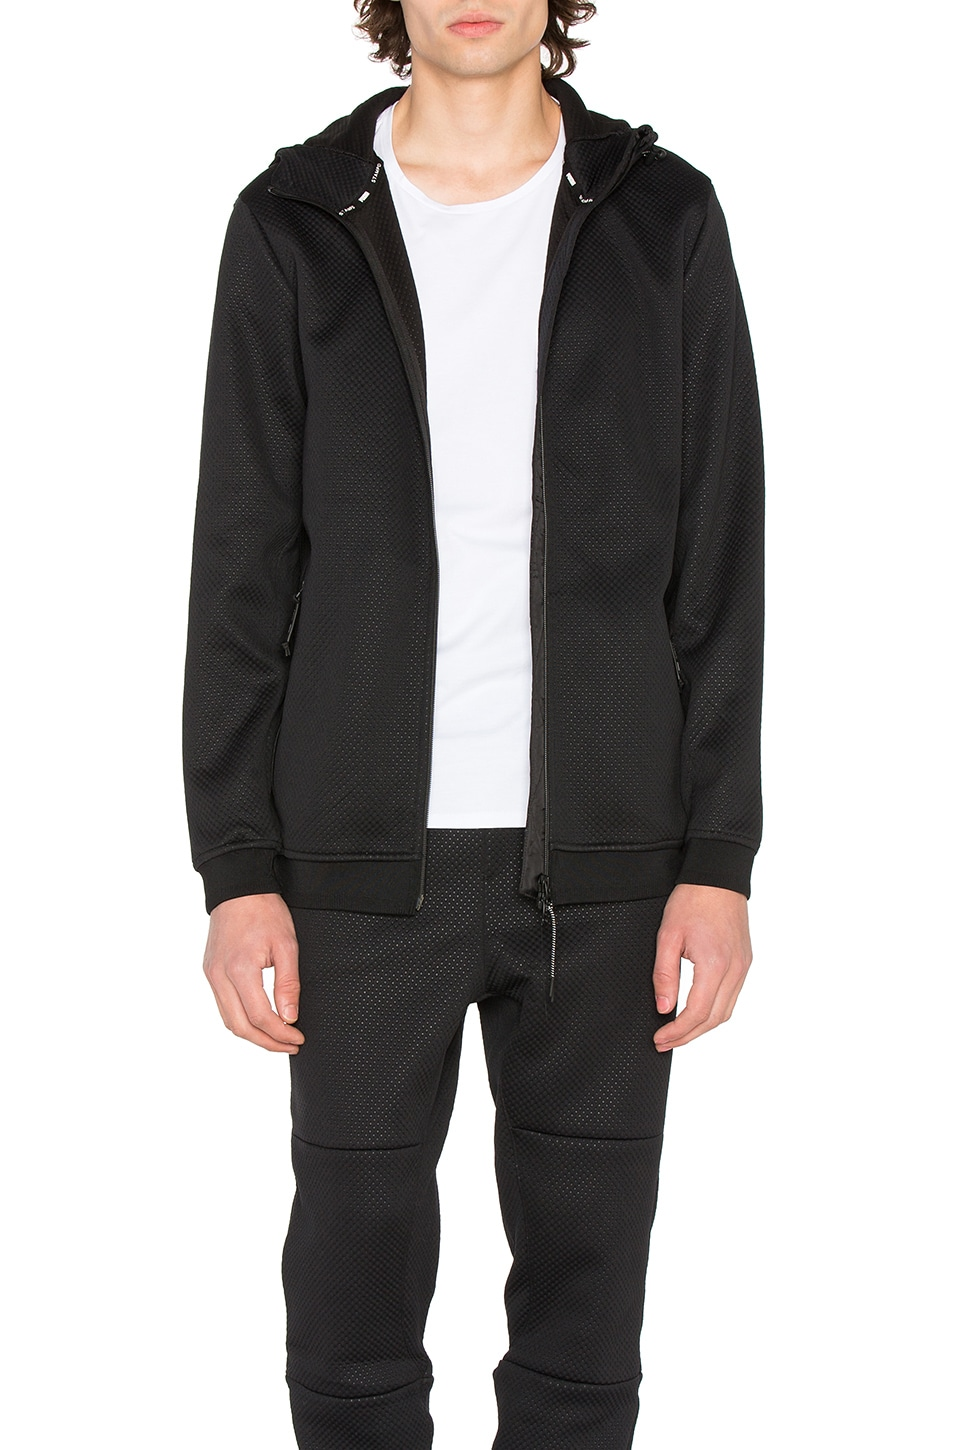 x STAMPD FZ Hoody by Puma Select